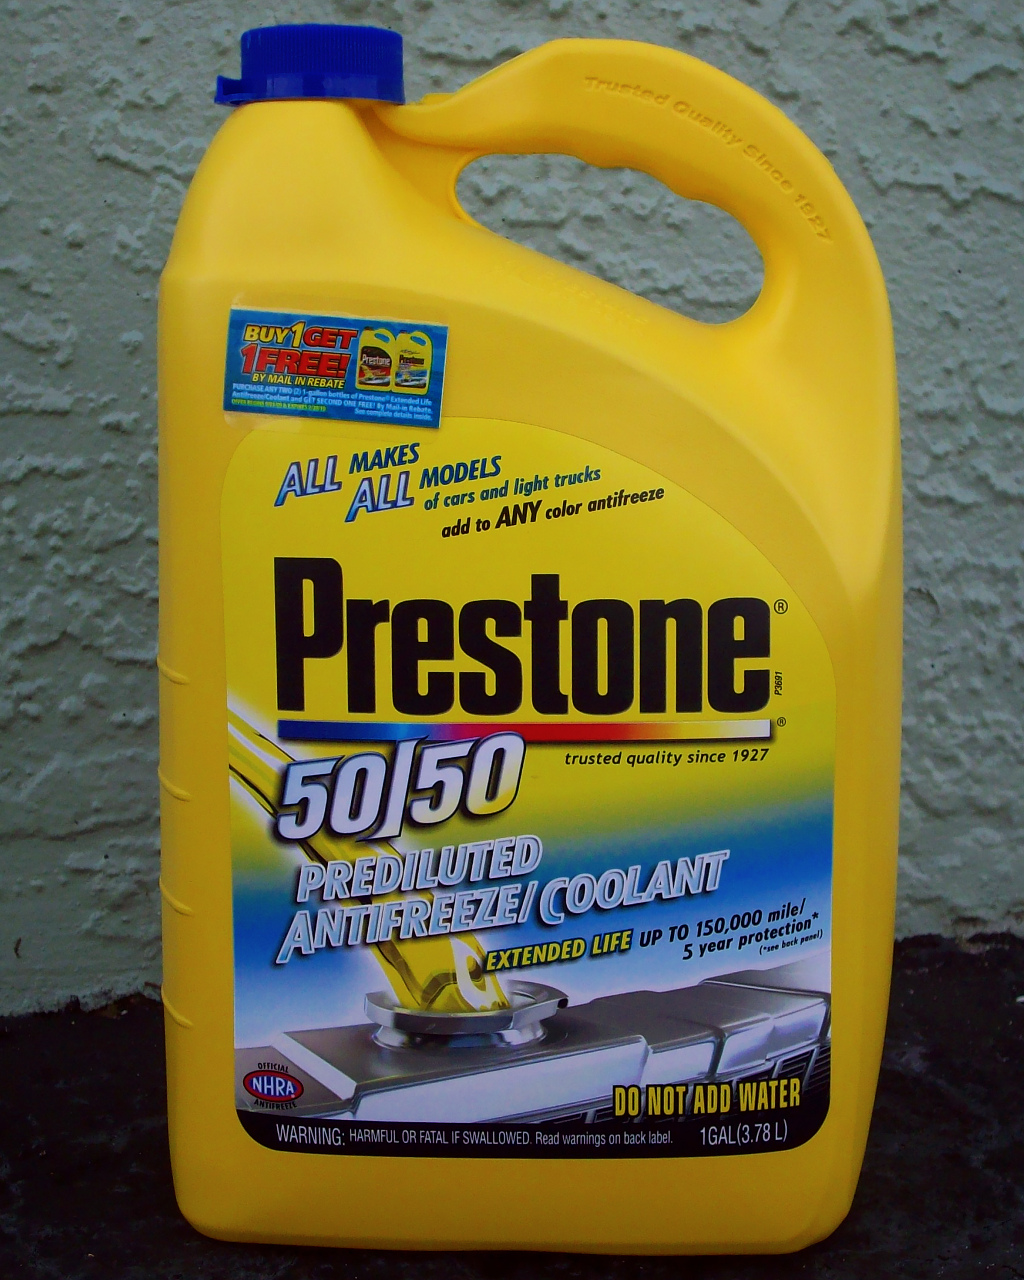 prestone antifreeze coloring pages - photo#15